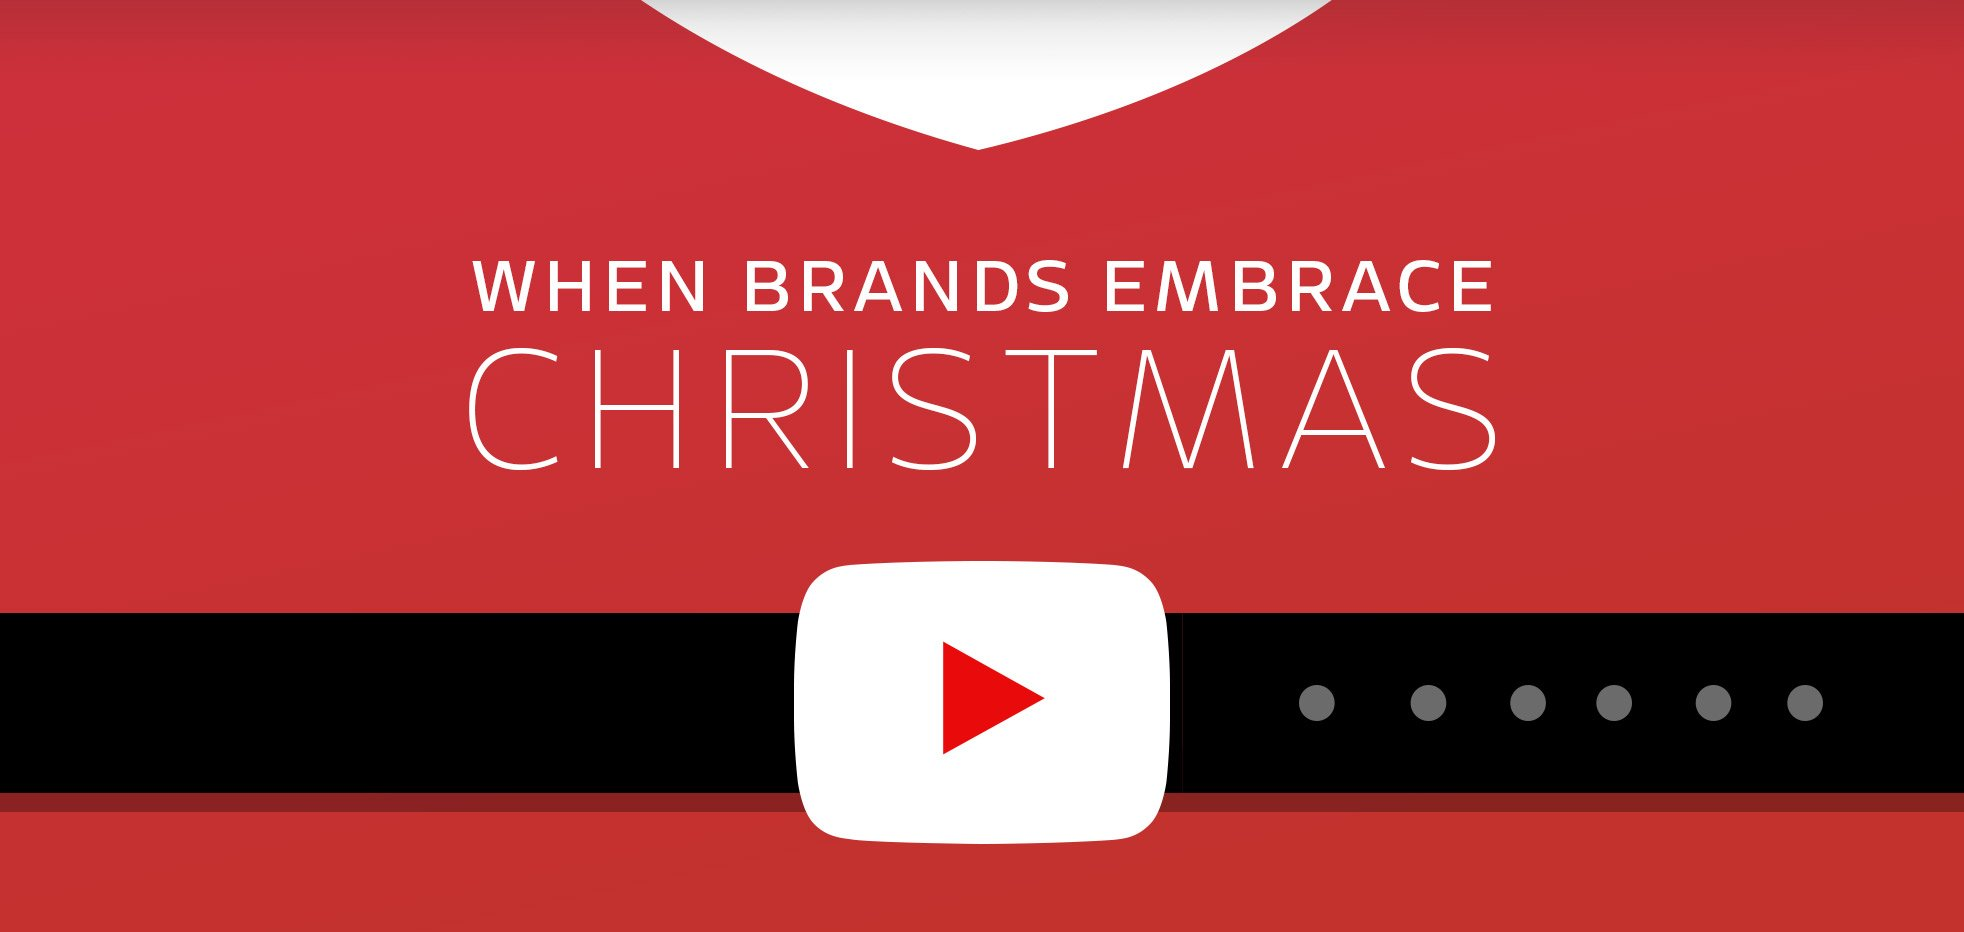 When brands embrace Christmas Campaigns